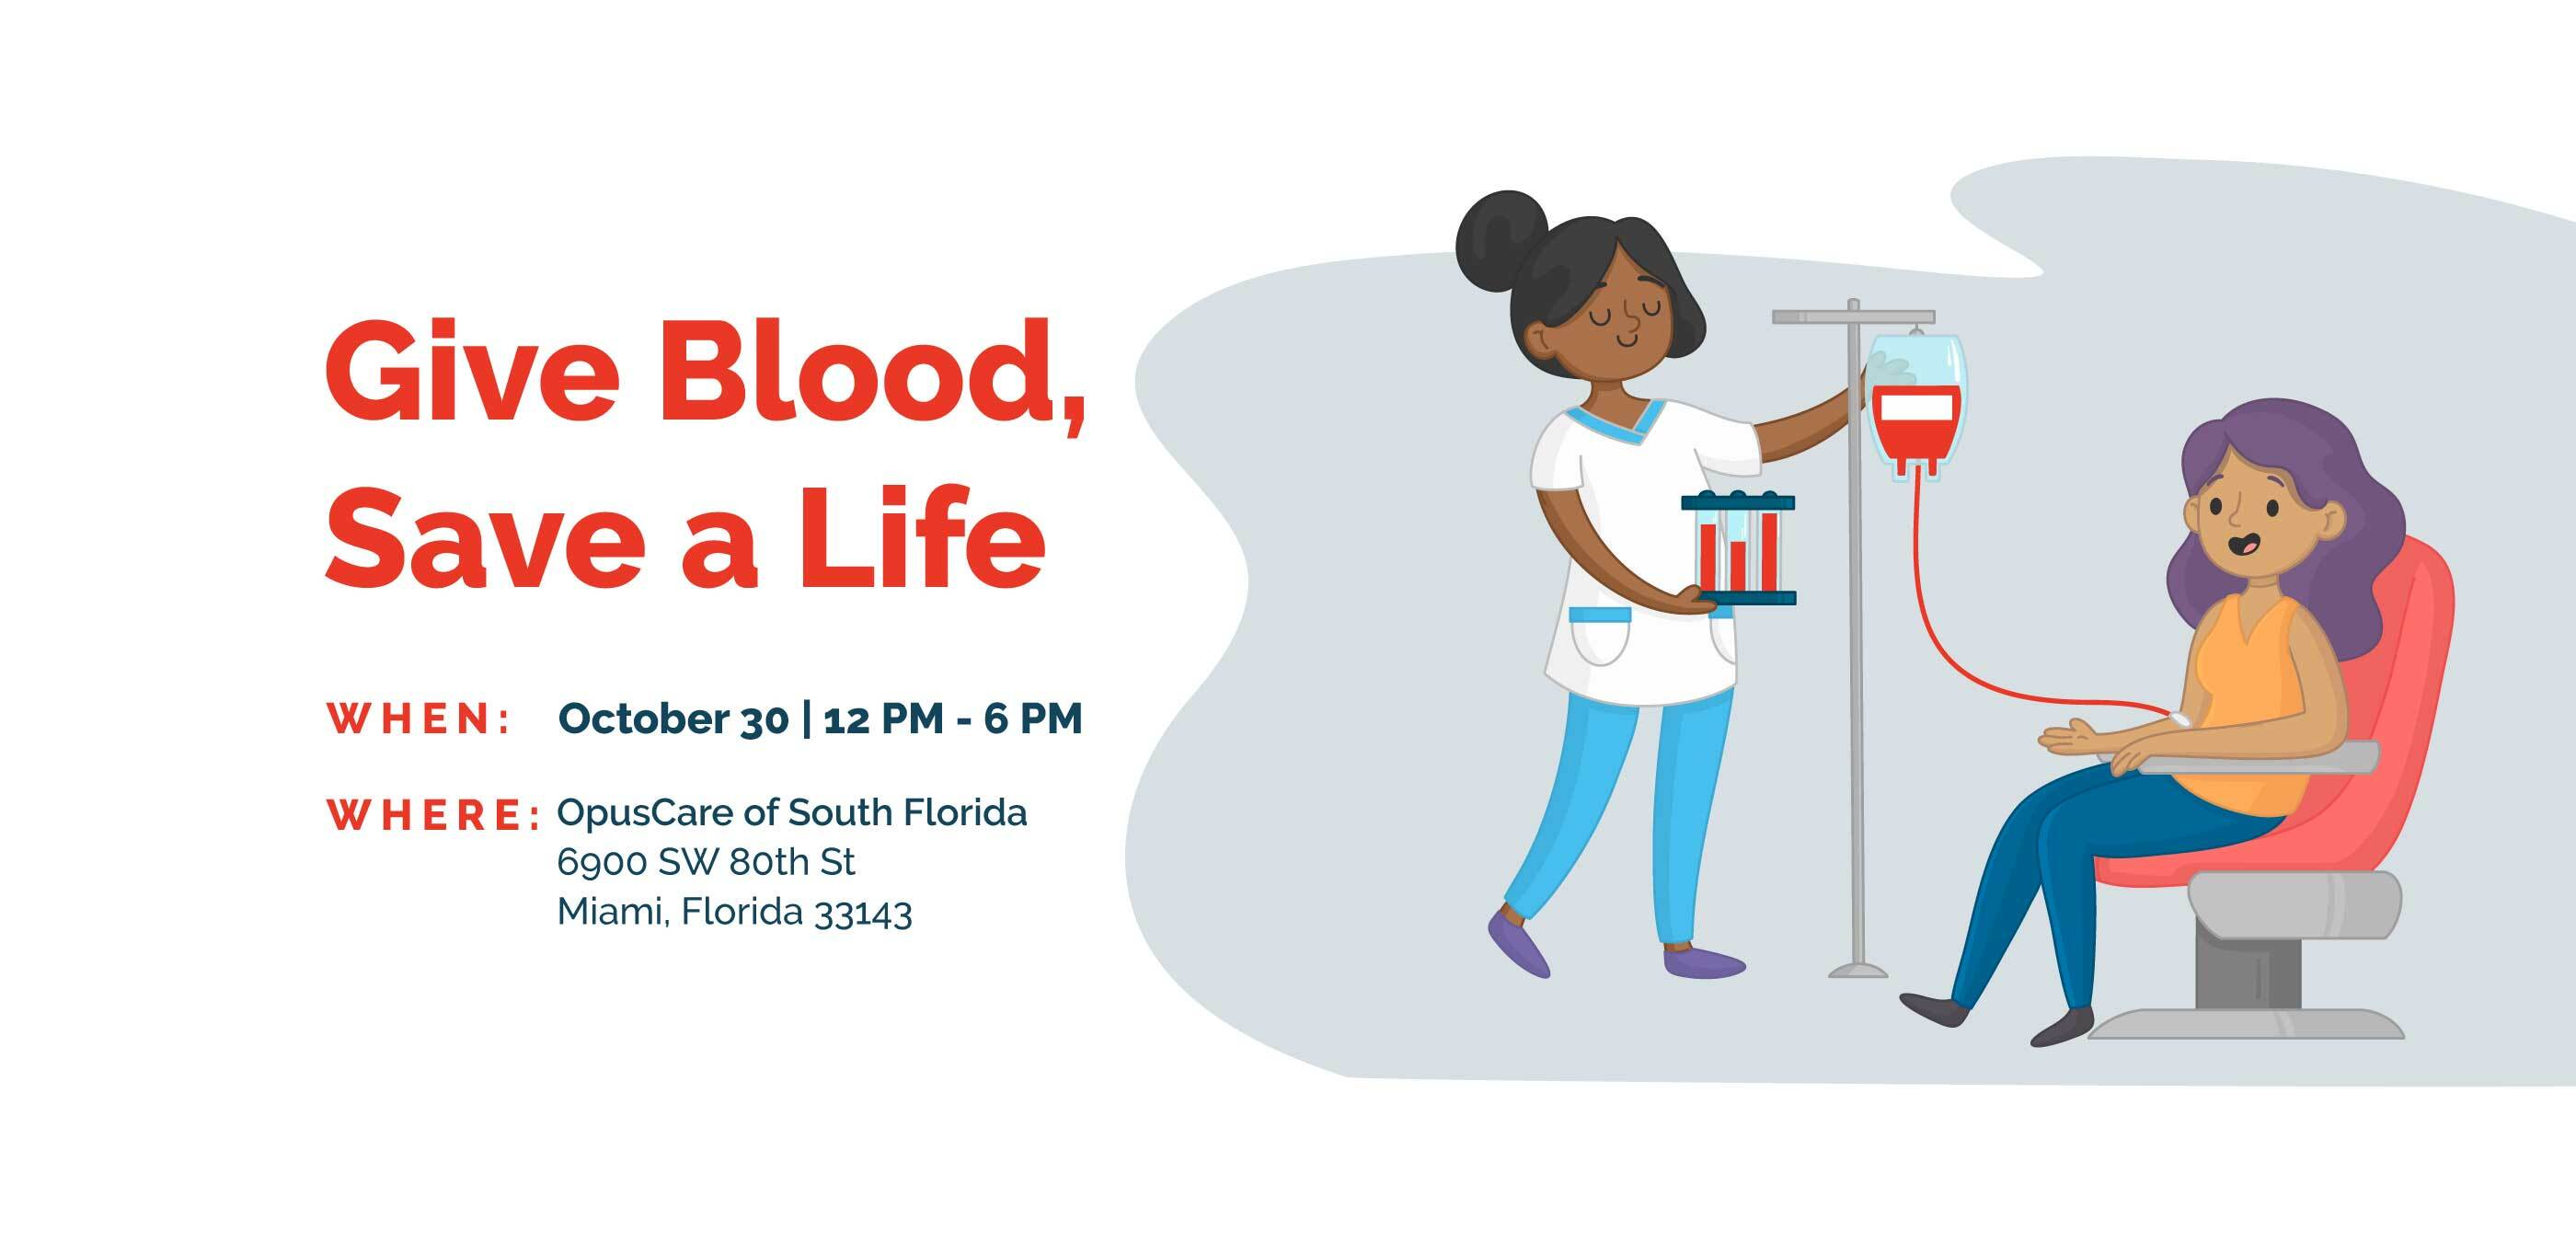 Give Blood, Save a Life. Oct. 30, 12 - 6 PM